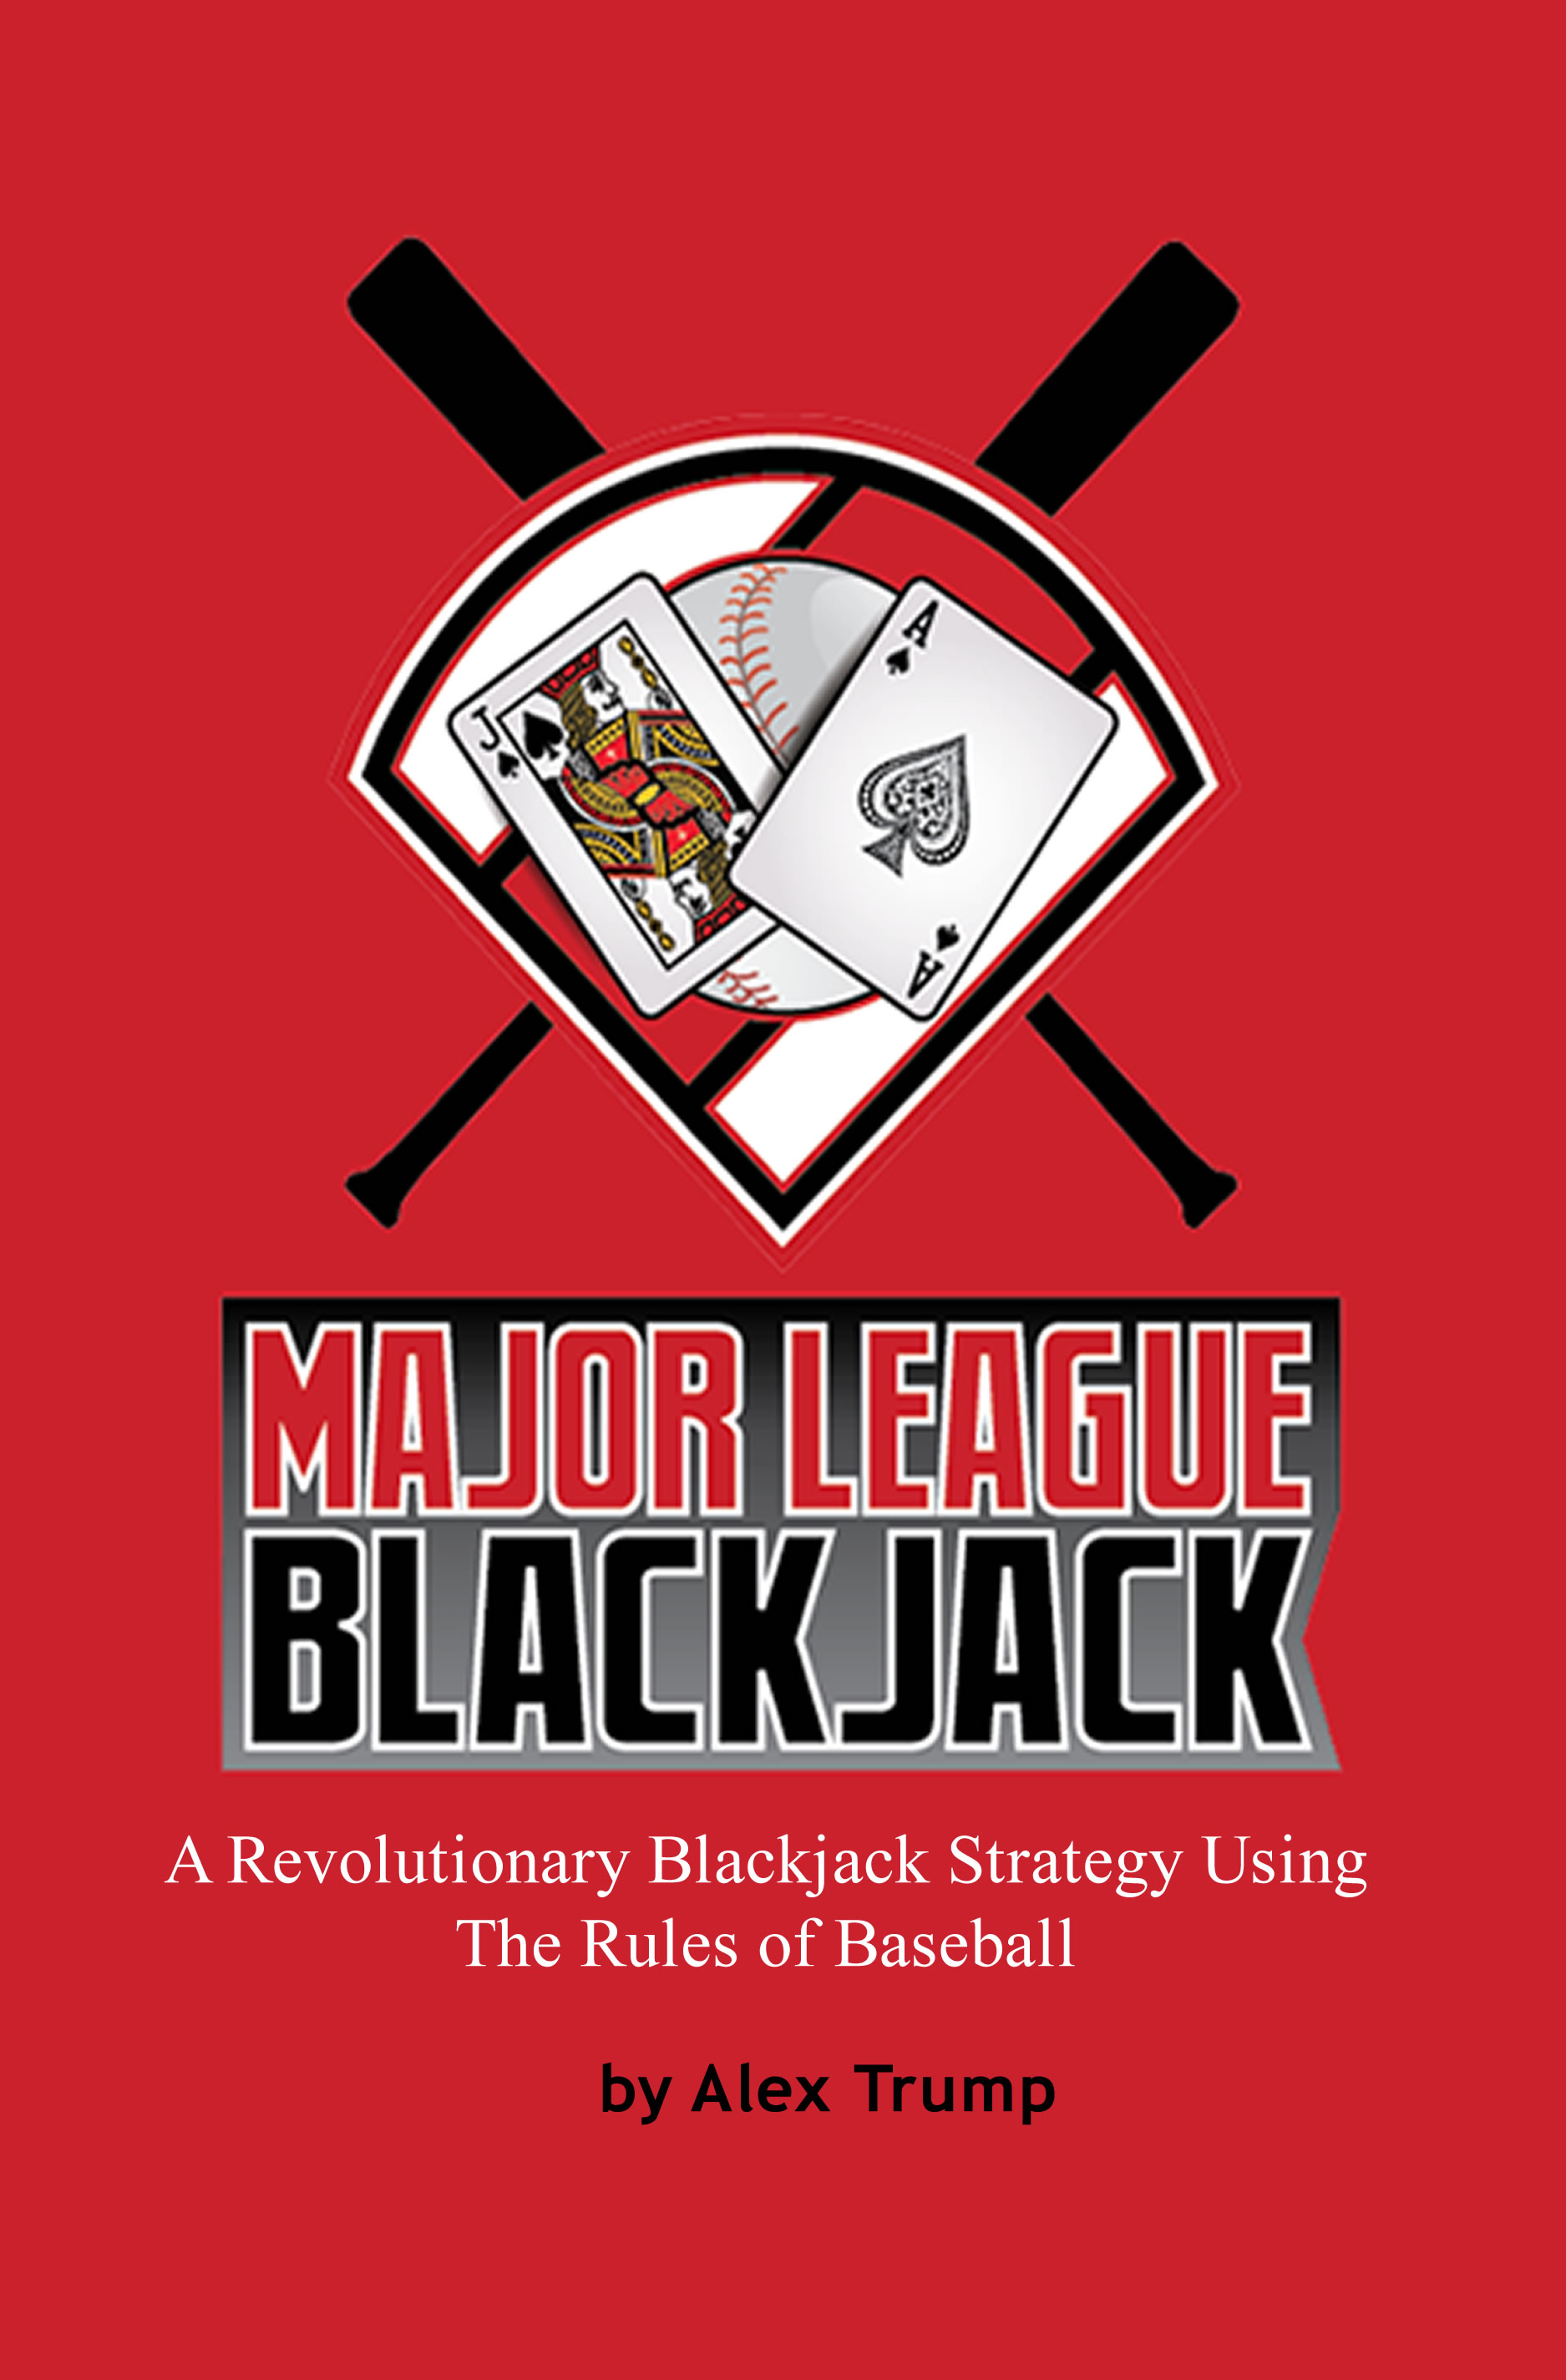 Major League Blackjack by Alex Trump